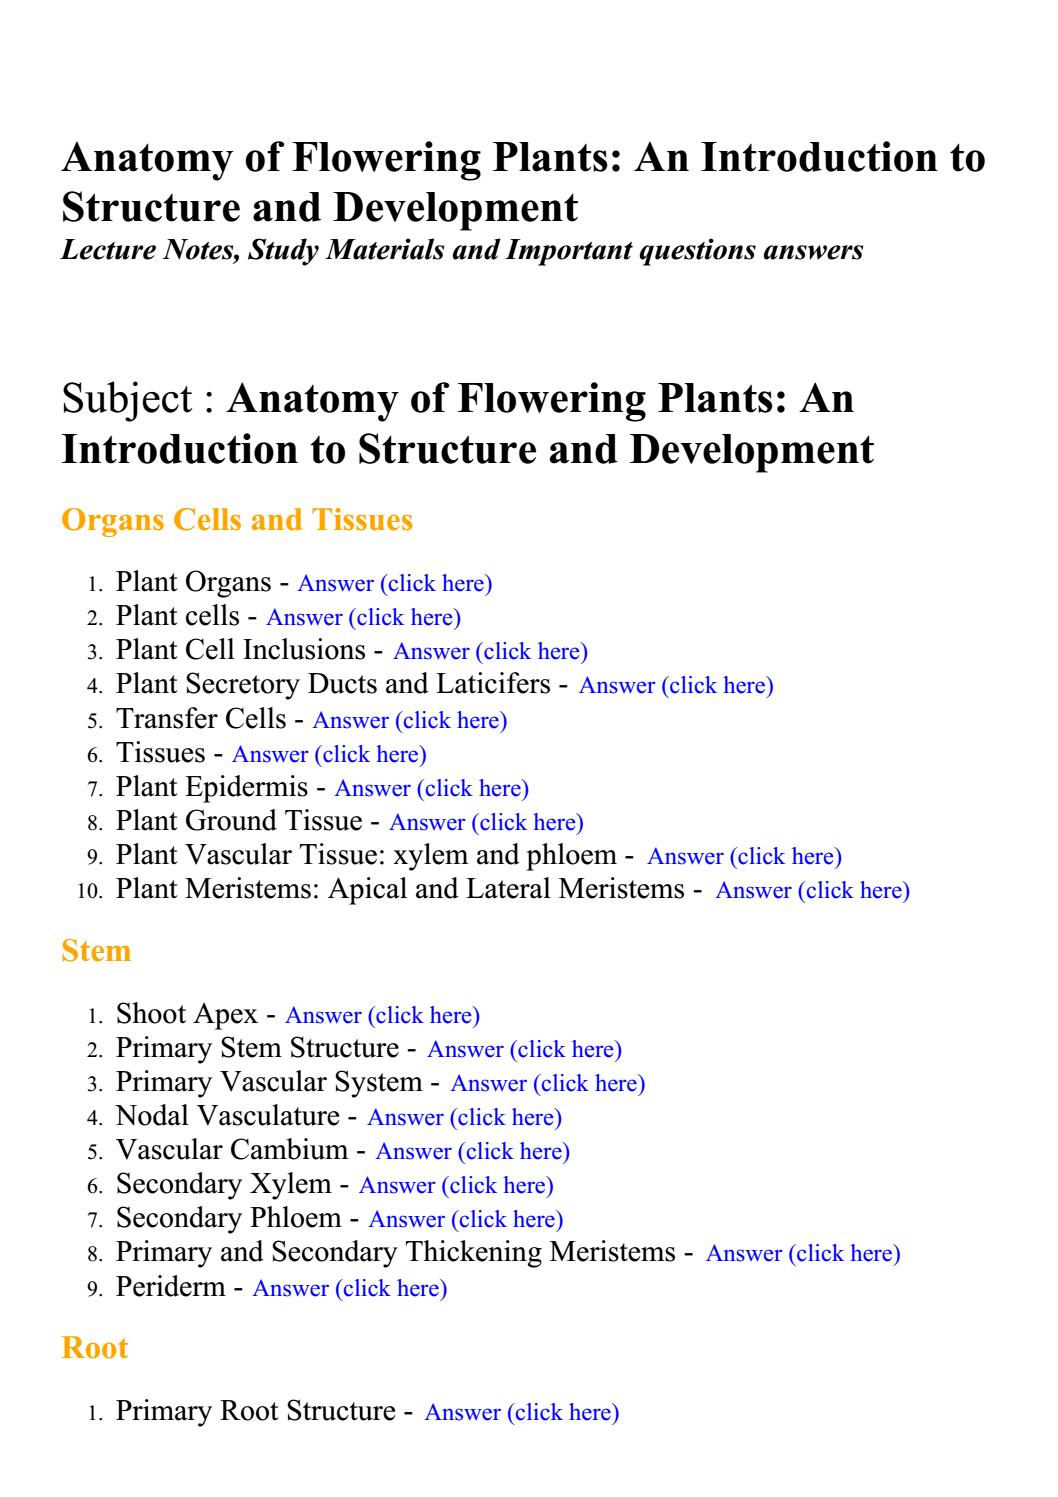 Anatomy of flowering plants an introduction to structure and ...